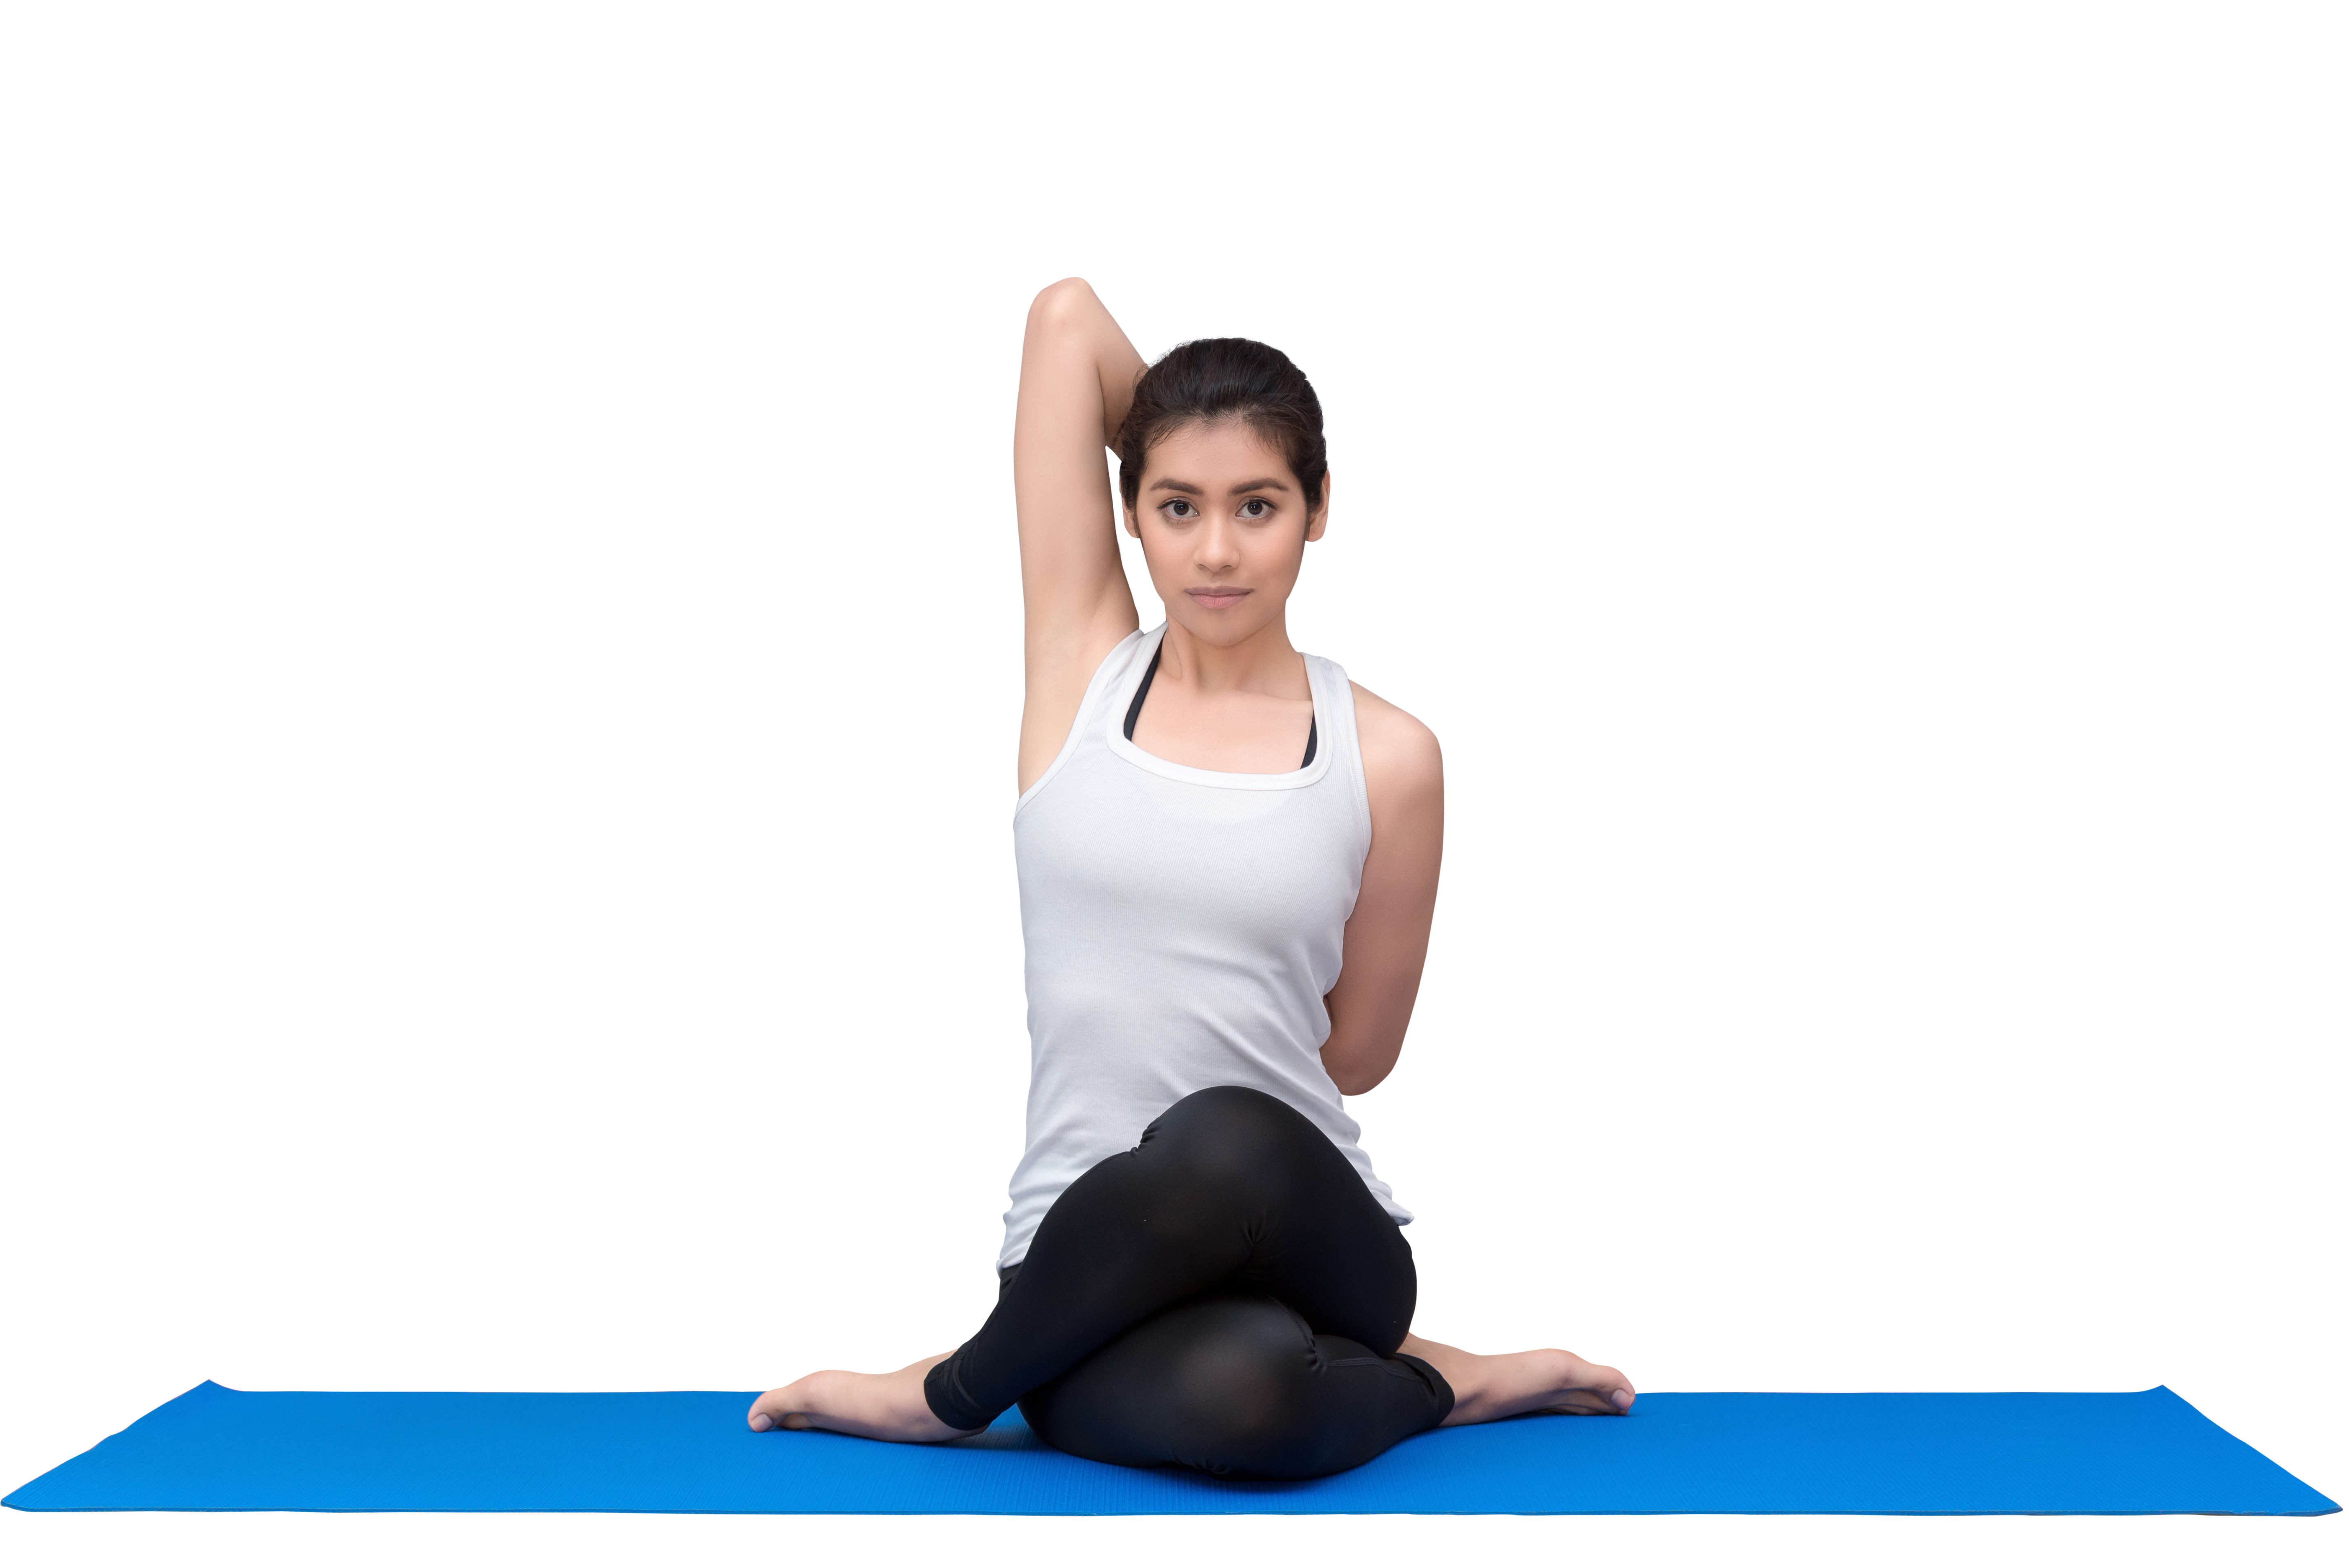 International Yoga Day: Yoga in higher education is about learning a new way of life